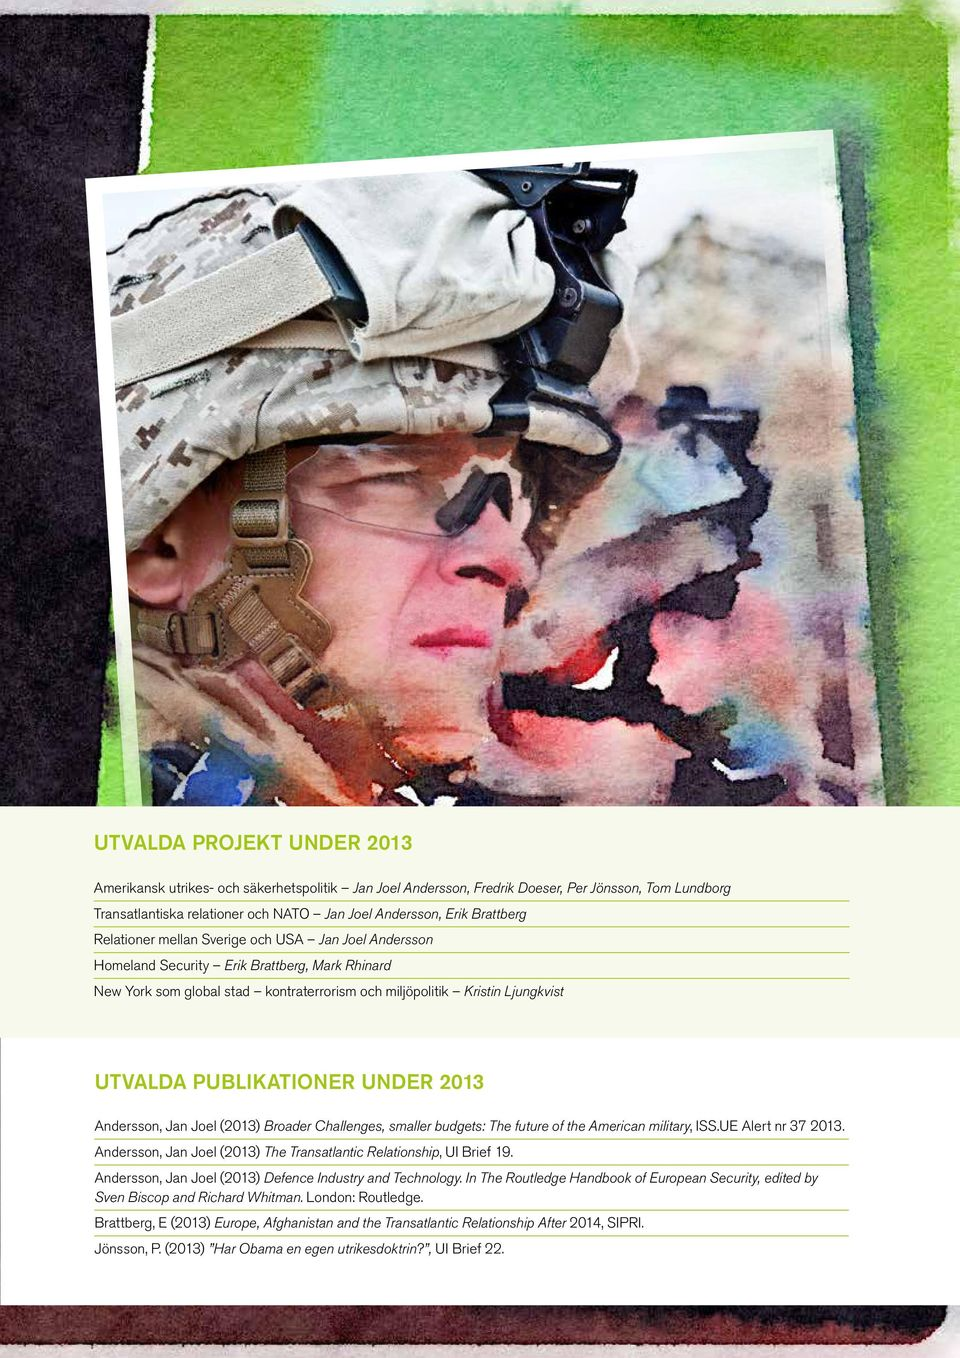 PUBLIKATIONER UNDER 2013 Andersson, Jan Joel (2013) Broader Challenges, smaller budgets: The future of the American military, ISS.UE Alert nr 37 2013.